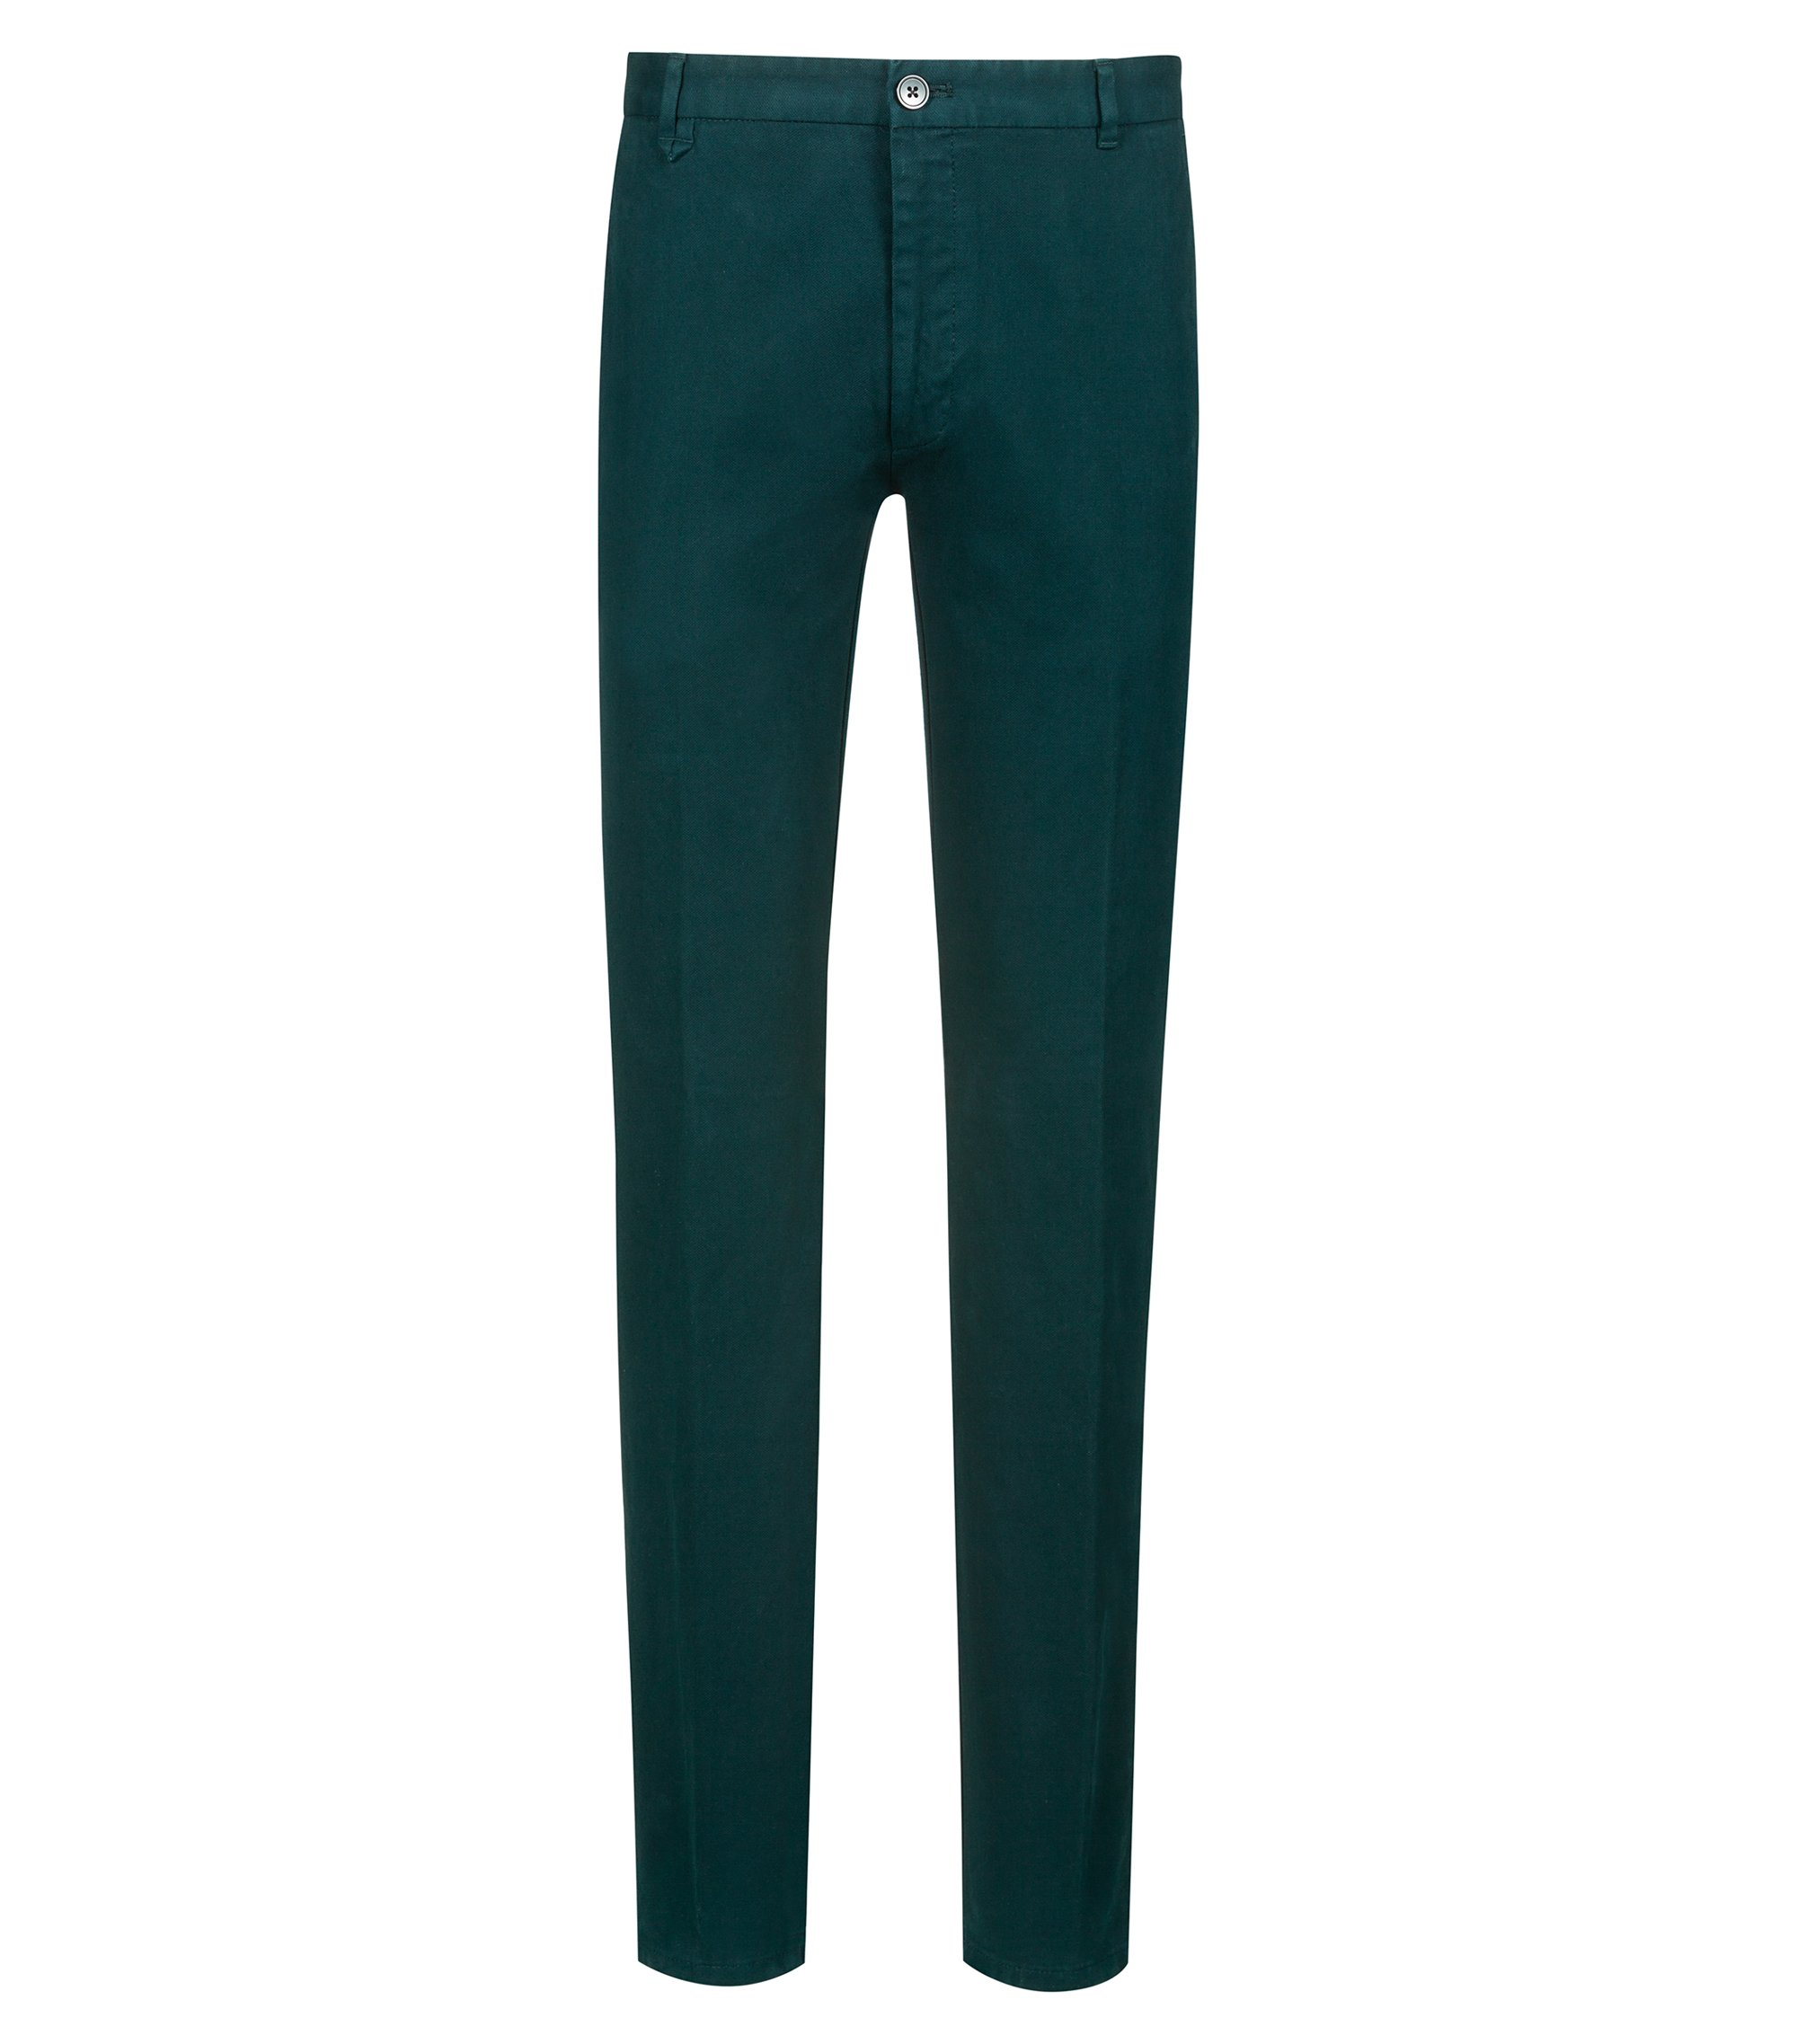 Pantalon Extra Slim Fit en coton stretch structuré, Vert sombre